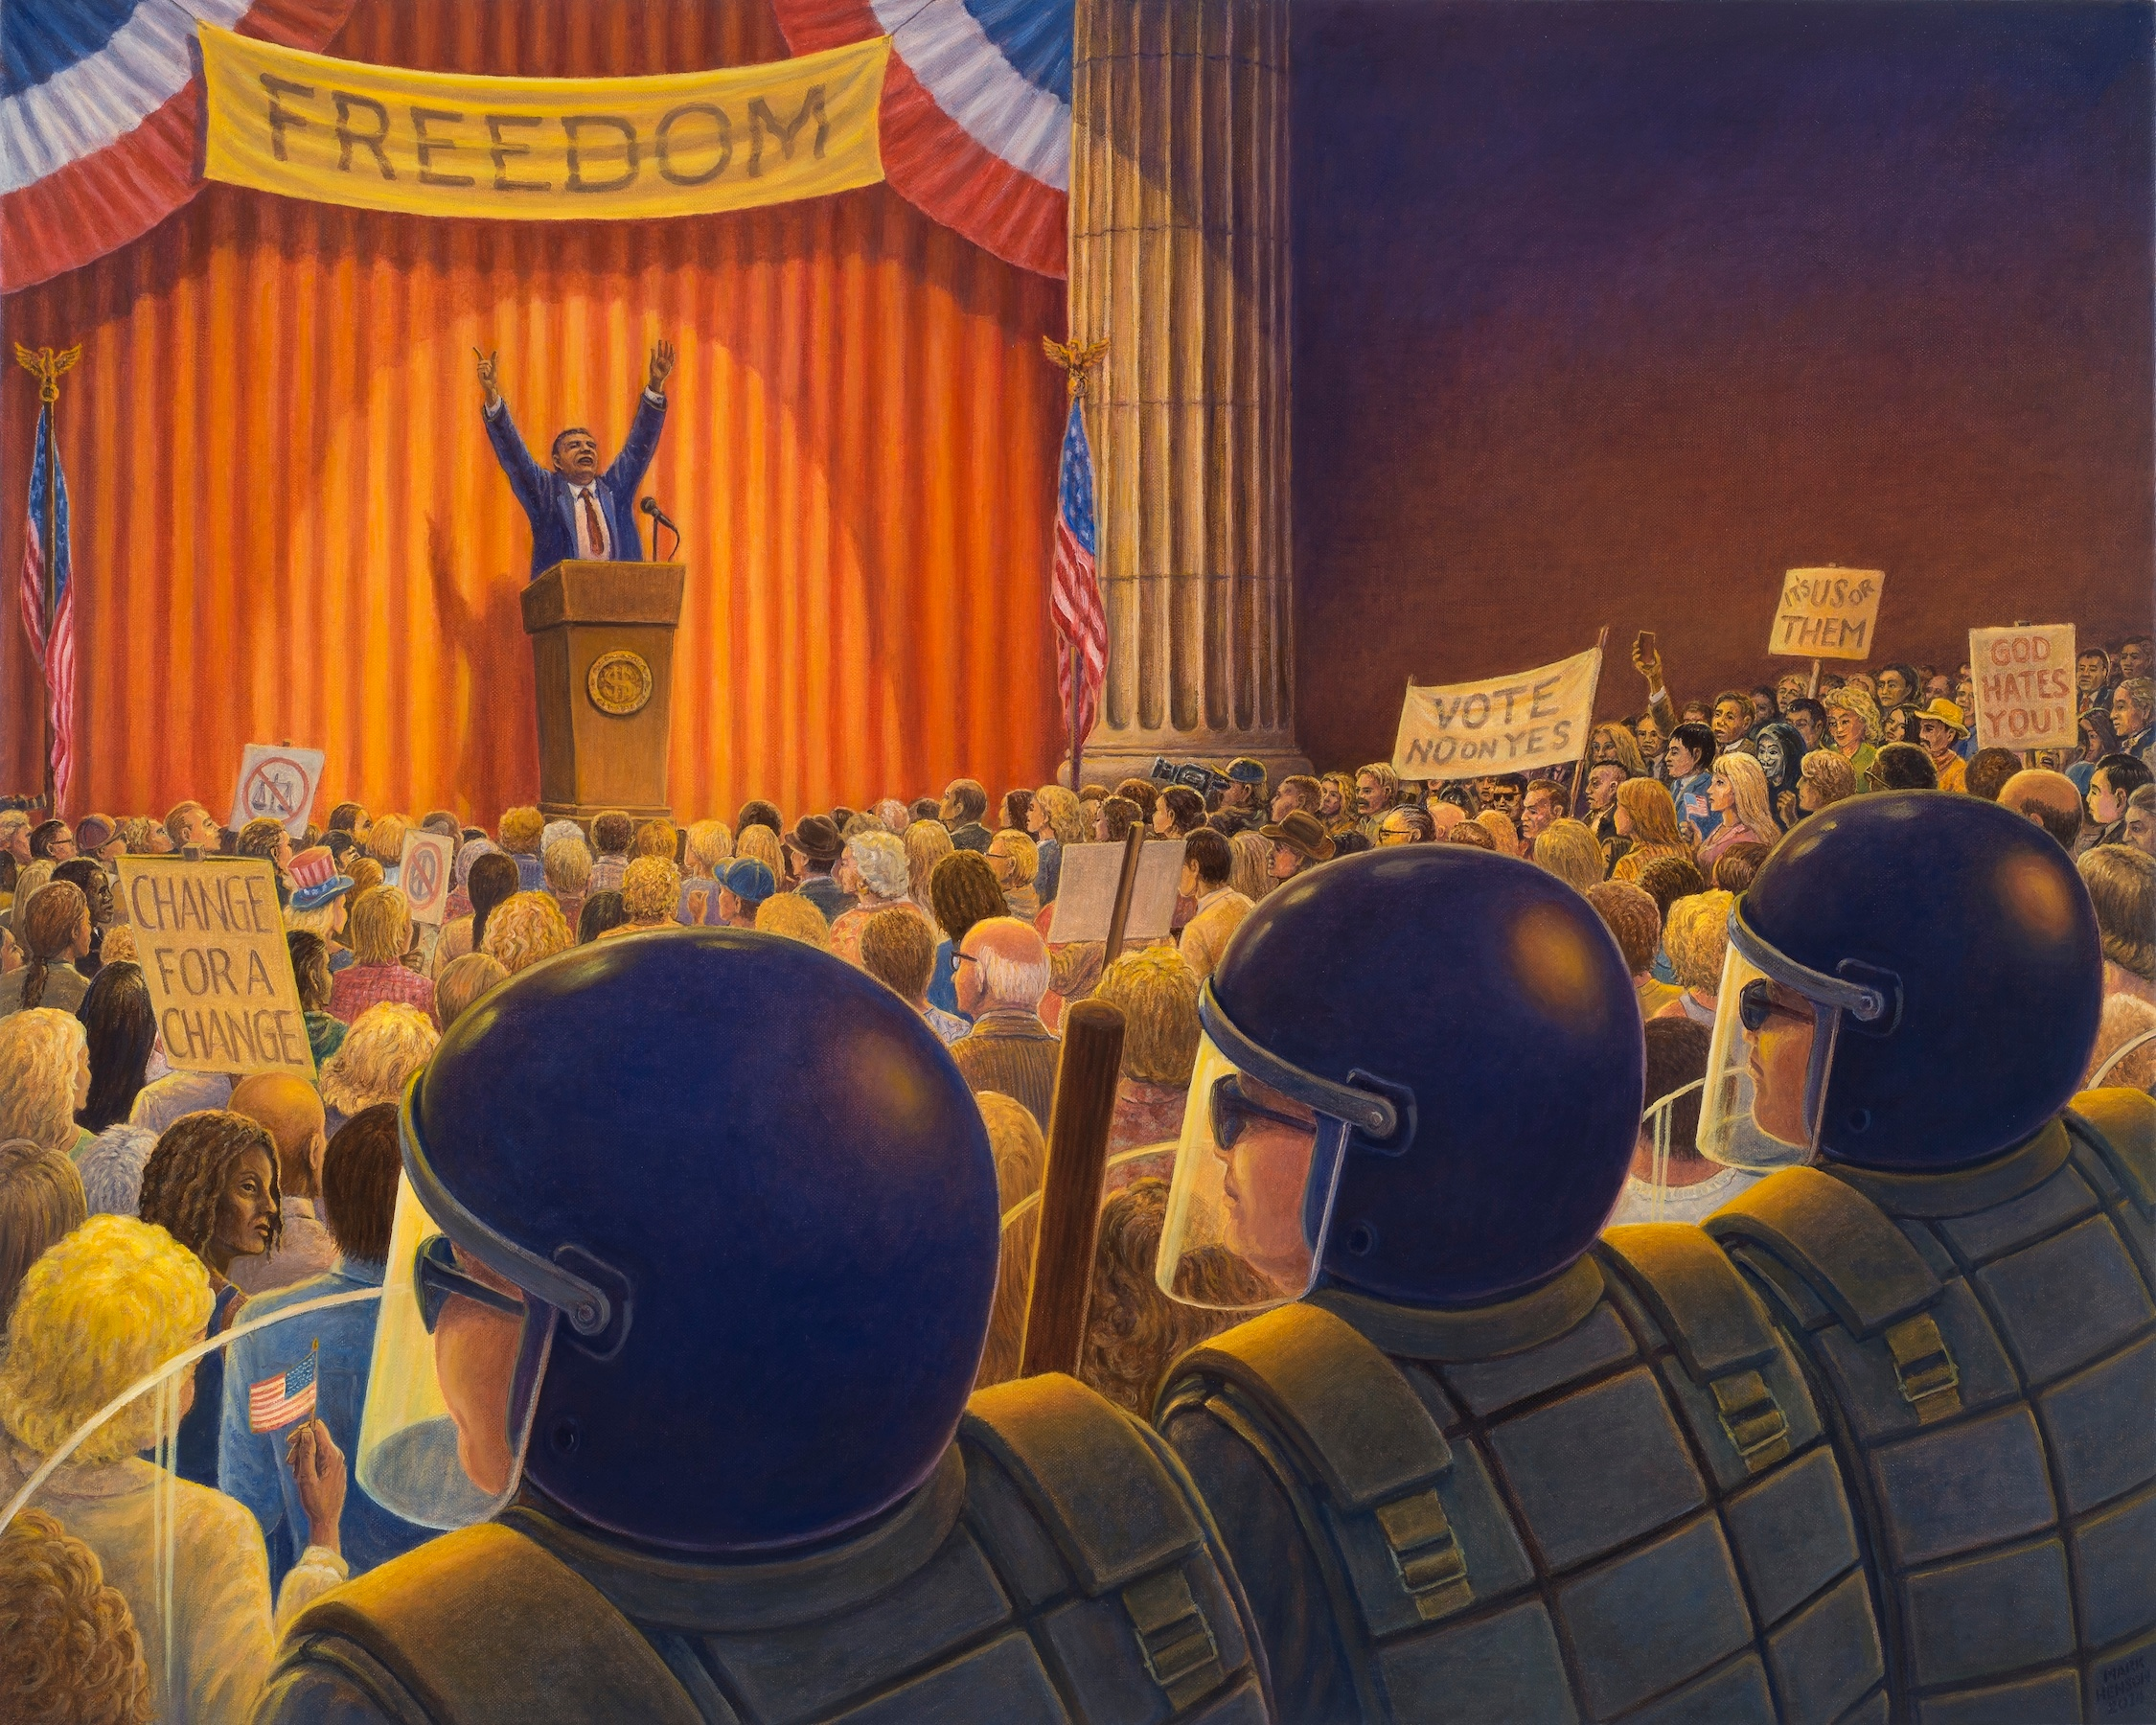 Cost of freedom giclee moemml